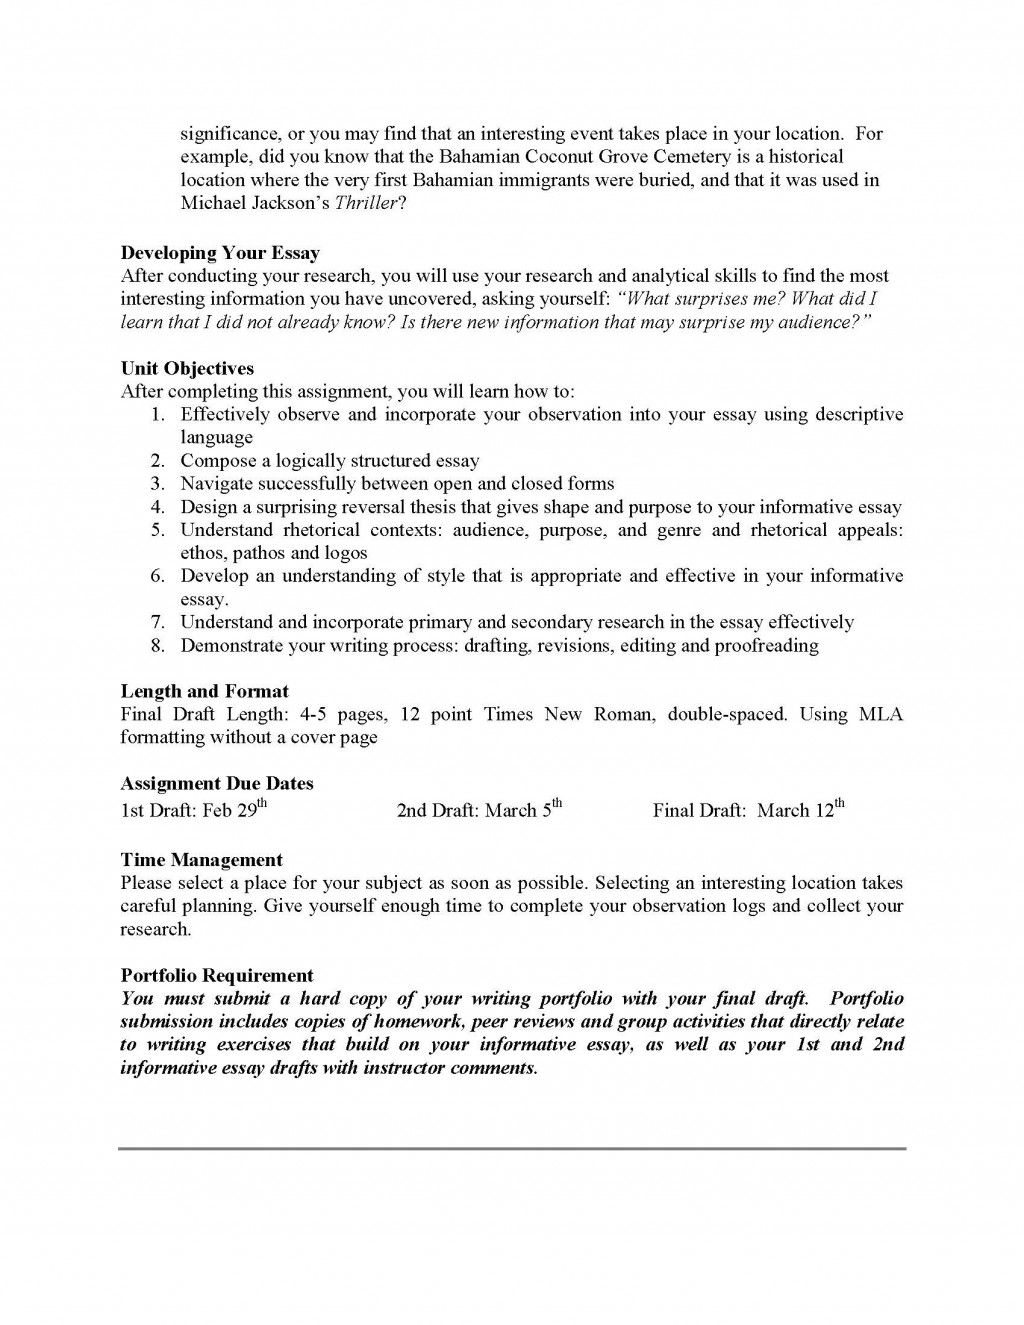 007 Informative Essay Unit Assignment Page 2 Sample Shocking Examples Middle School Outline Example Large